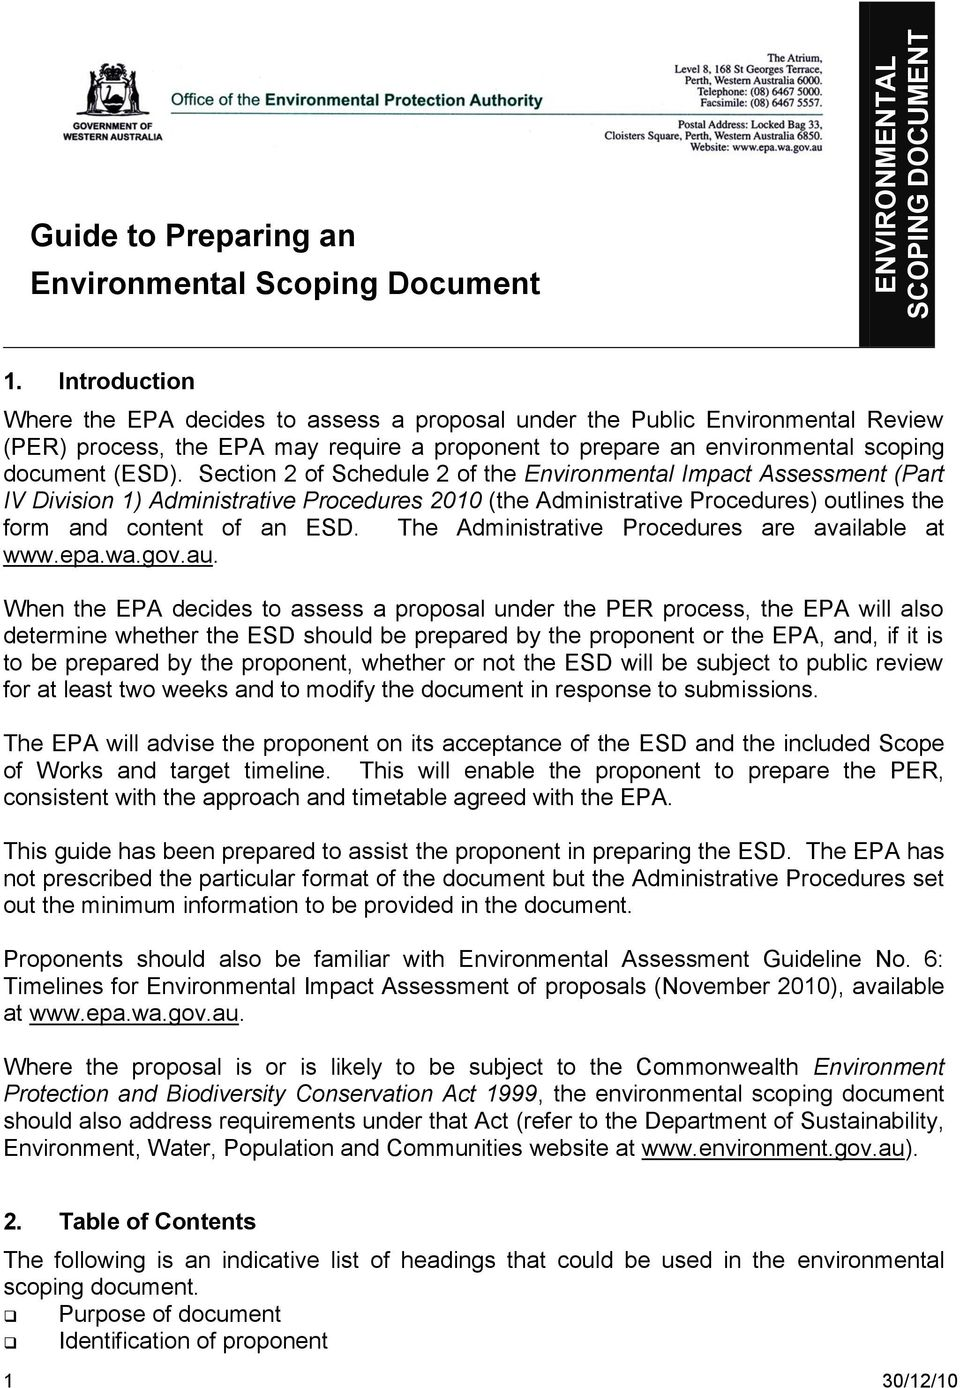 Section 2 of Schedule 2 of the Environmental Impact Assessment (Part IV Division 1) Administrative Procedures 2010 (the Administrative Procedures) outlines the form and content of an ESD.